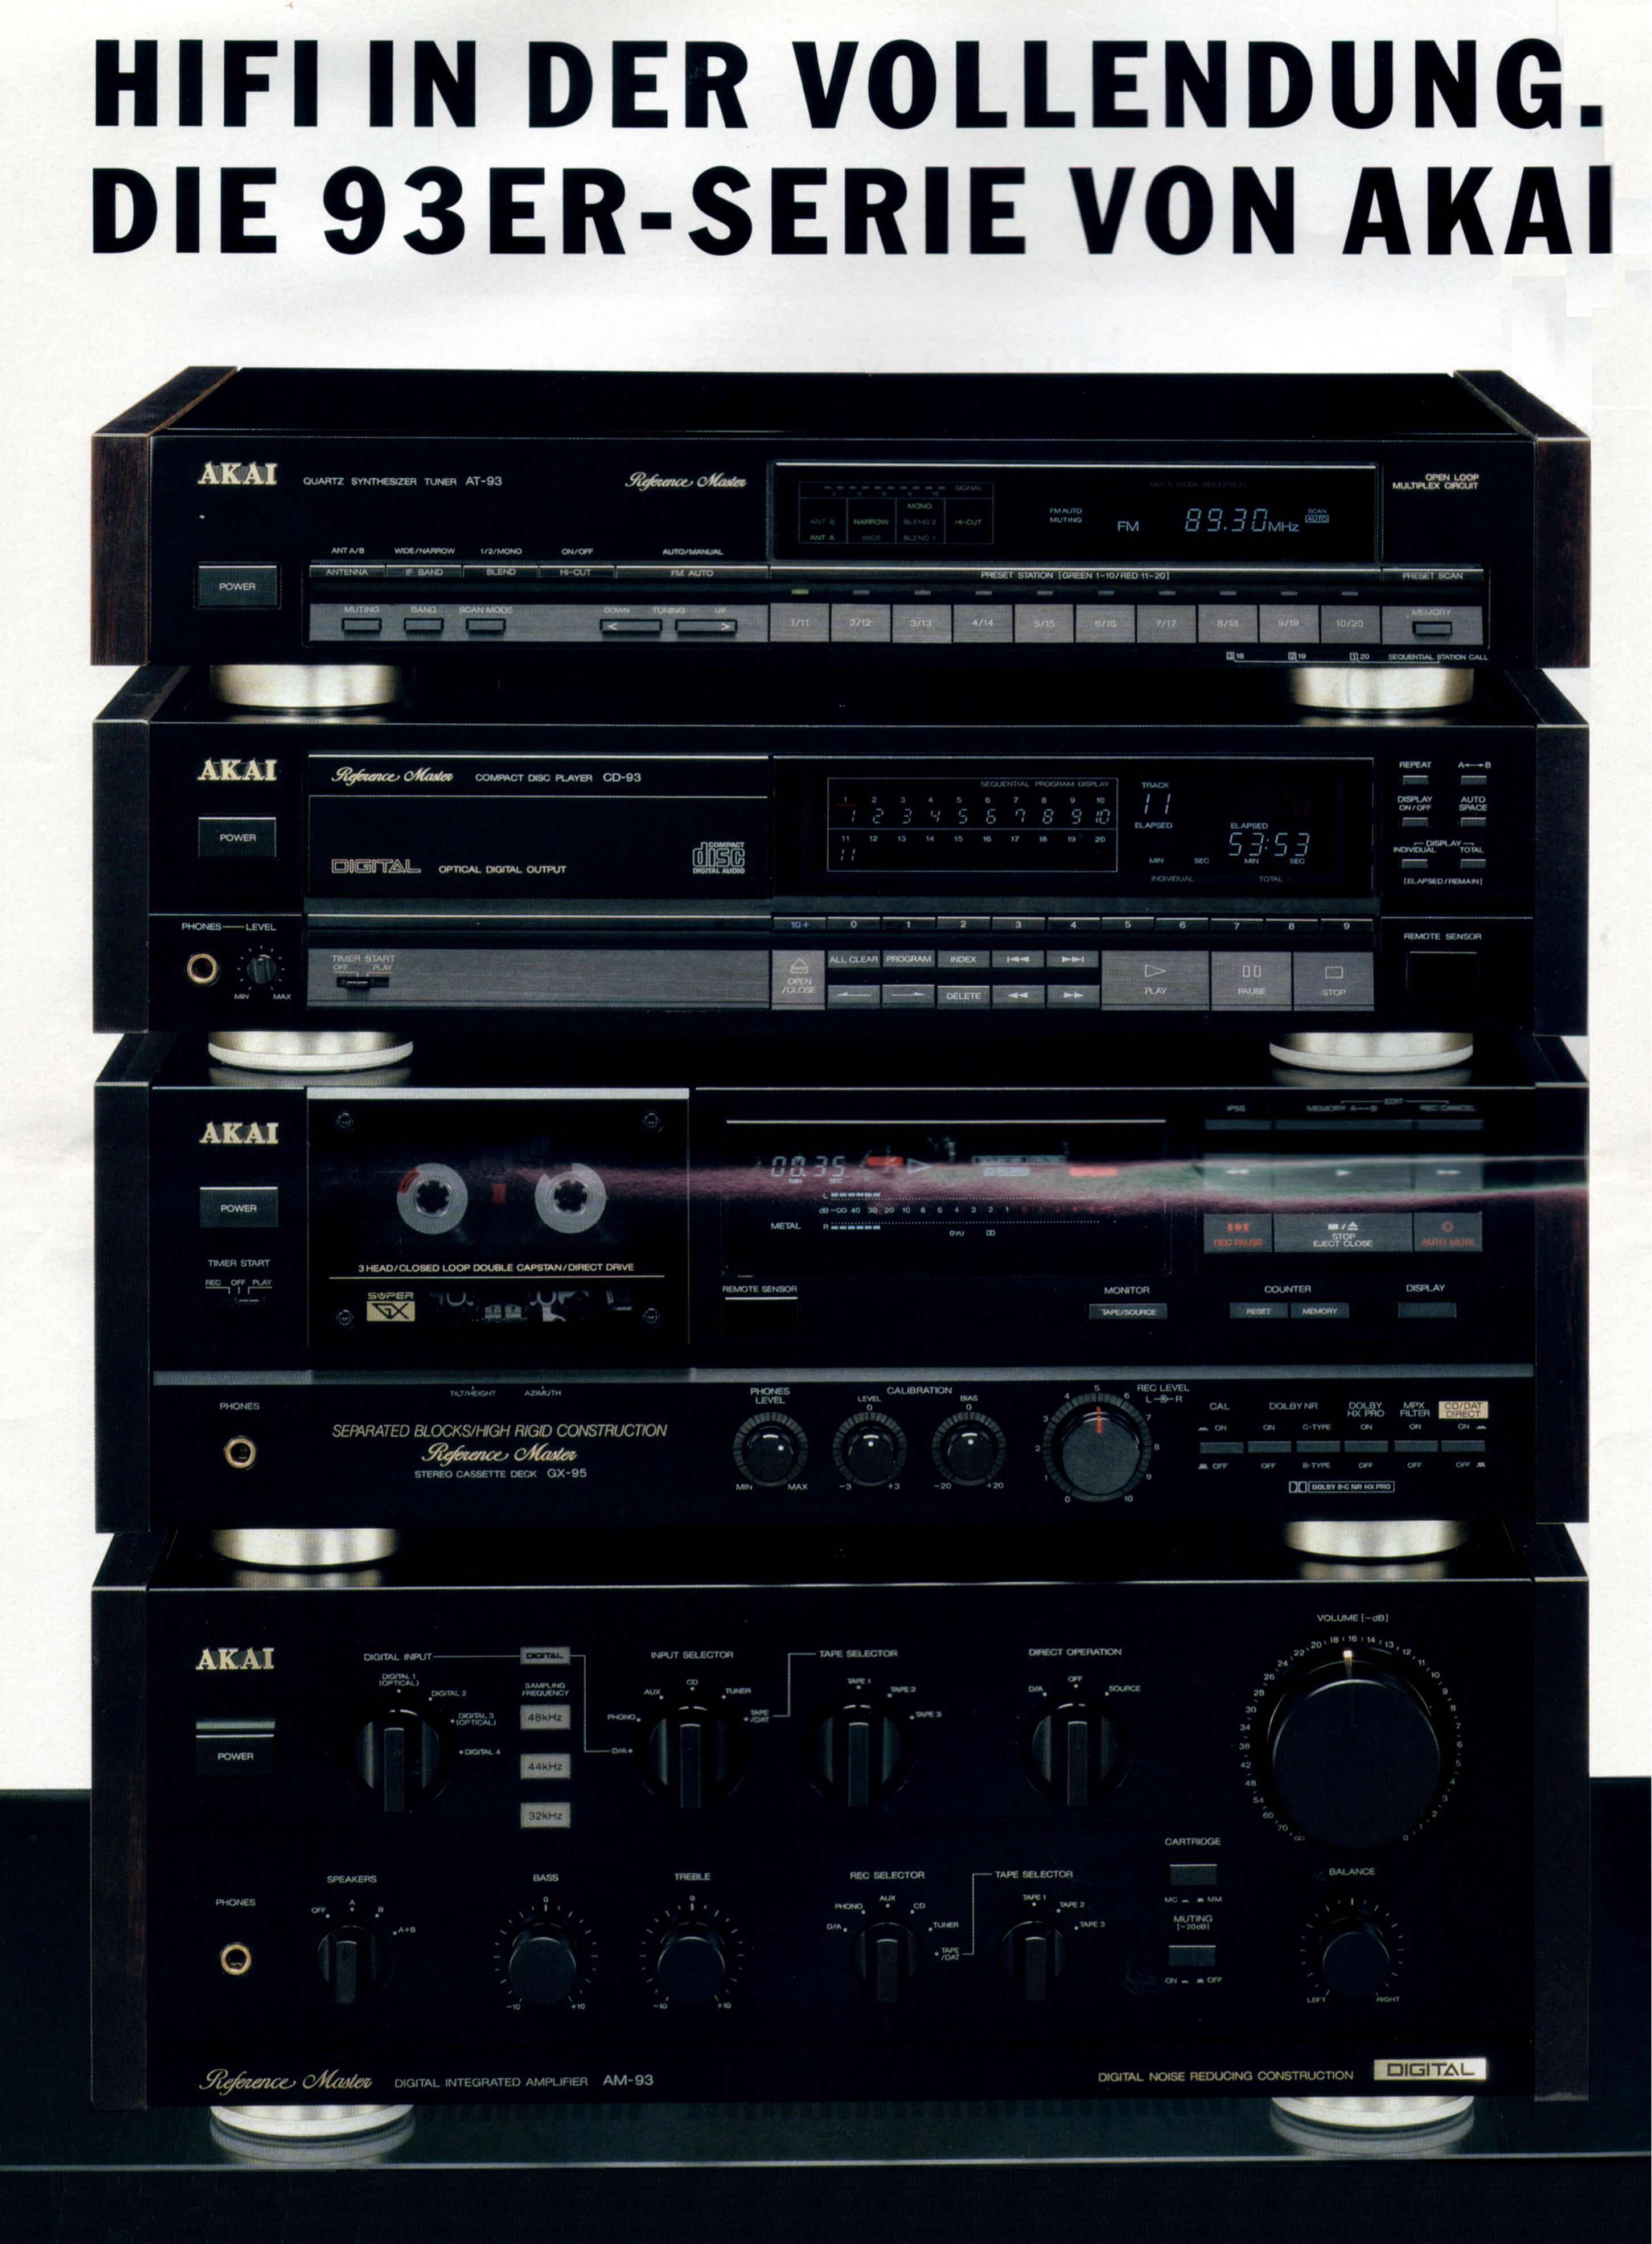 Akai AM-AT-CD-93-GX-95-Prospekt-1989.jpg